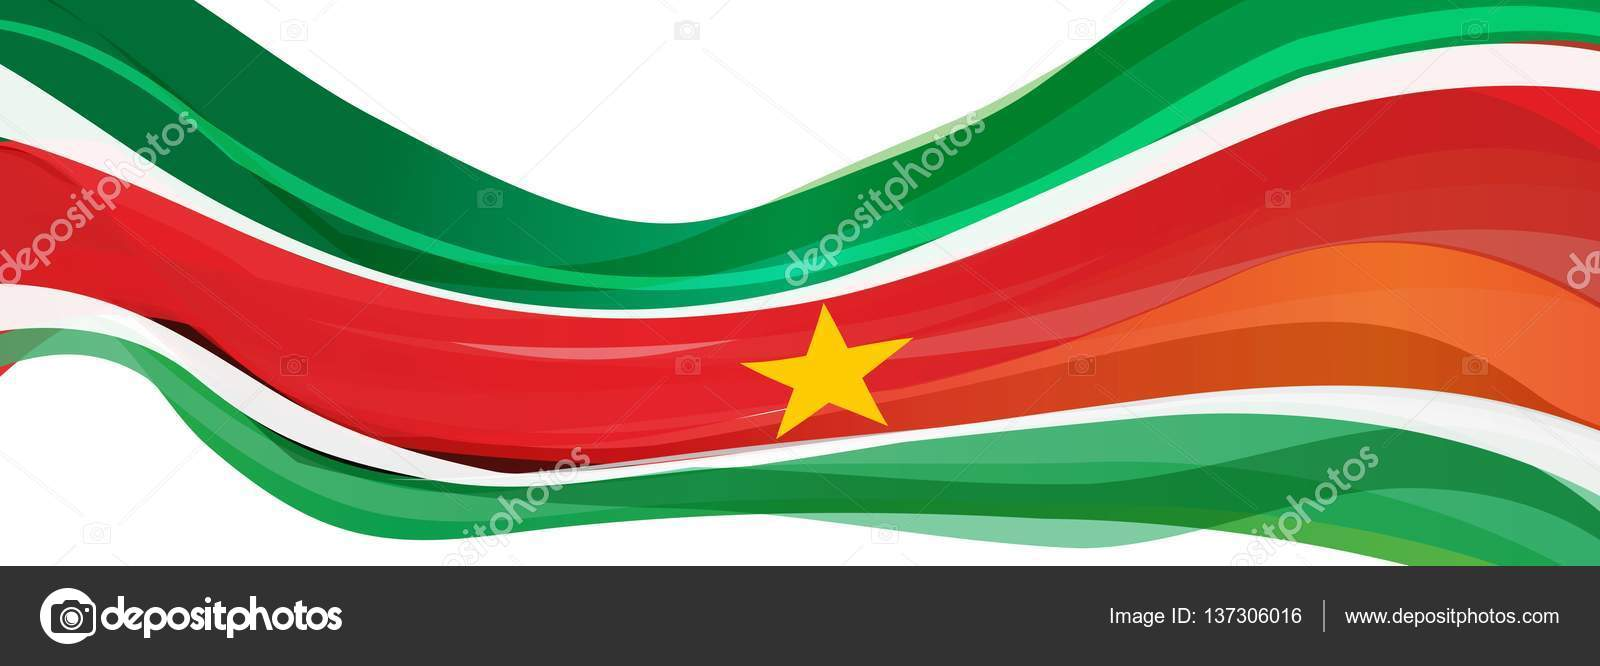 Green White Red Striped With A Yellow Star Flag Of The Republic Of